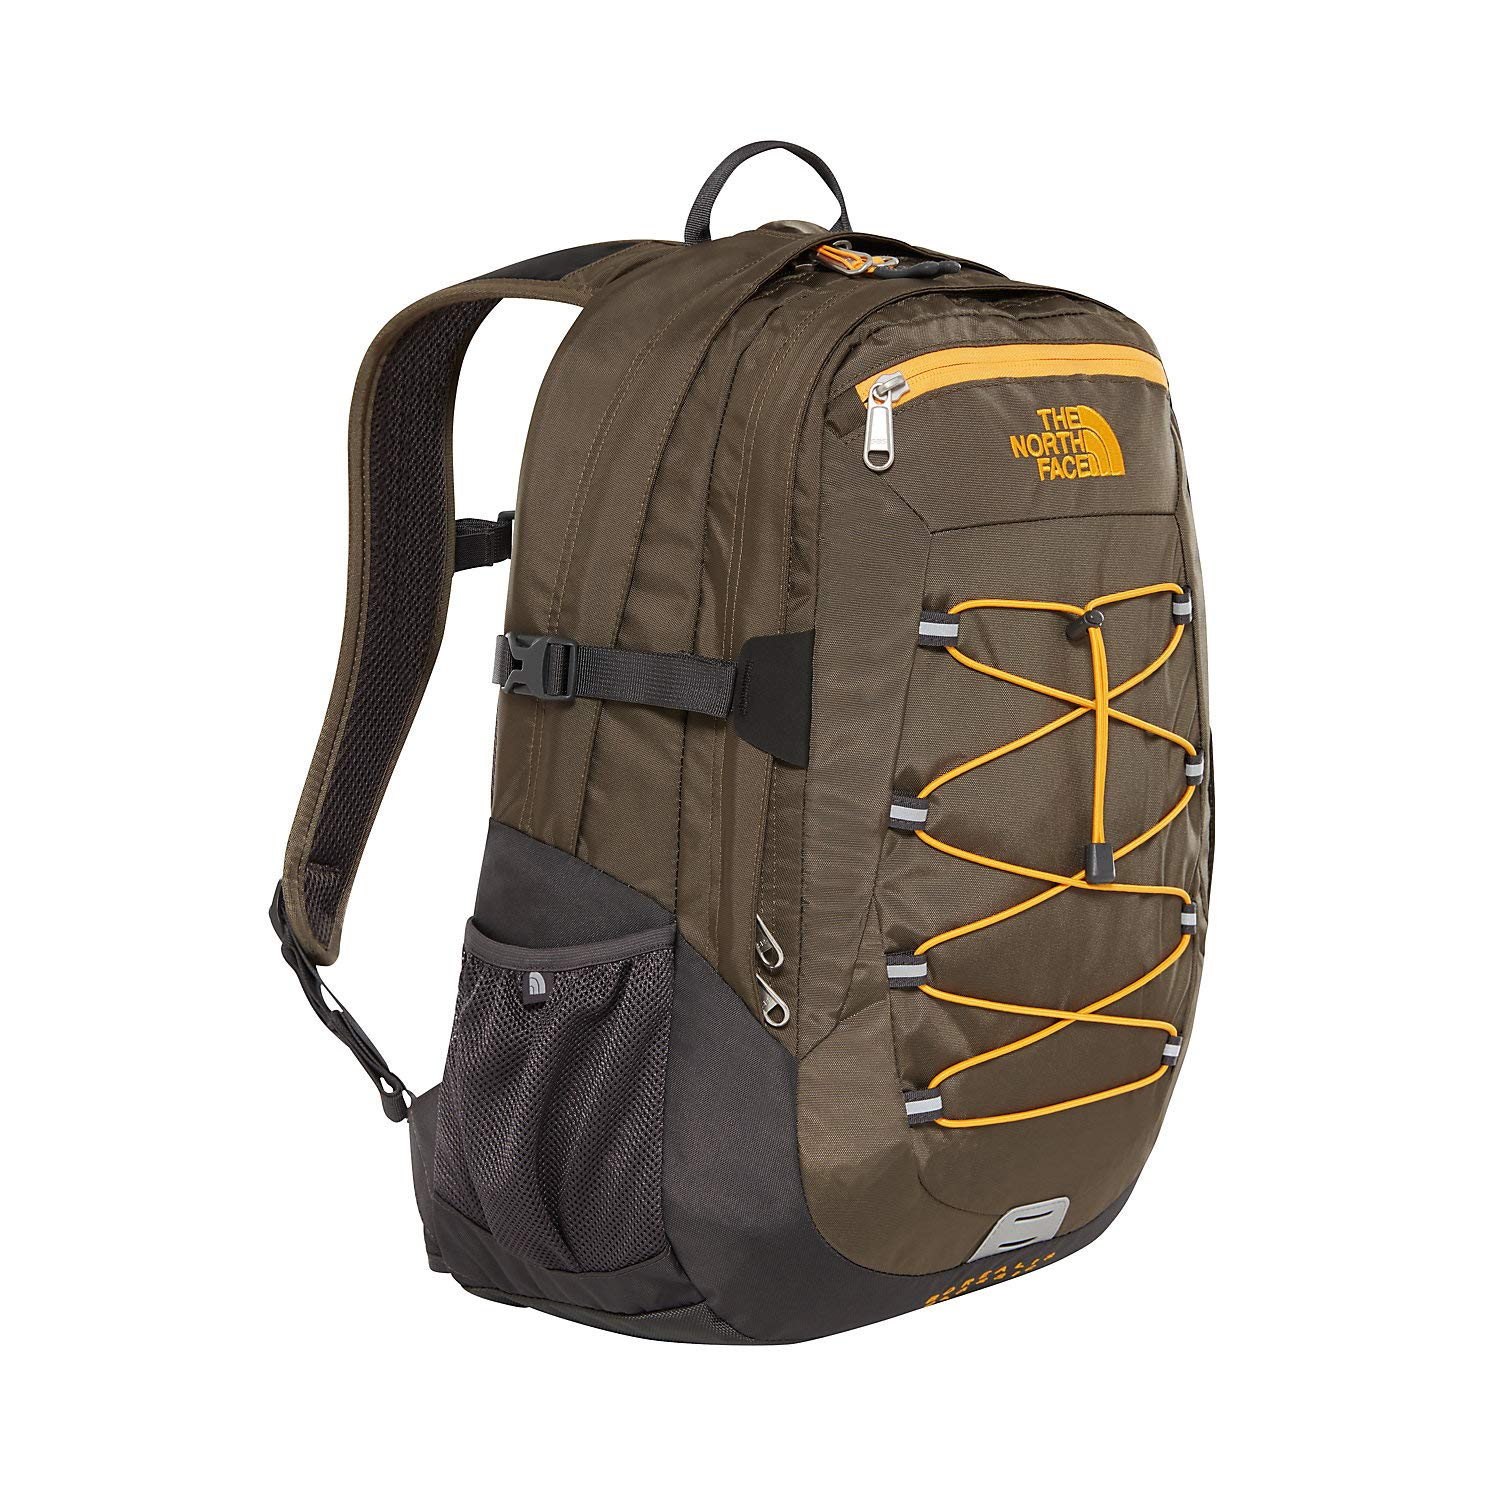 The North Face Borealis Classic Mochila, Unisex Adulto, New Taupe Green, Talla Única